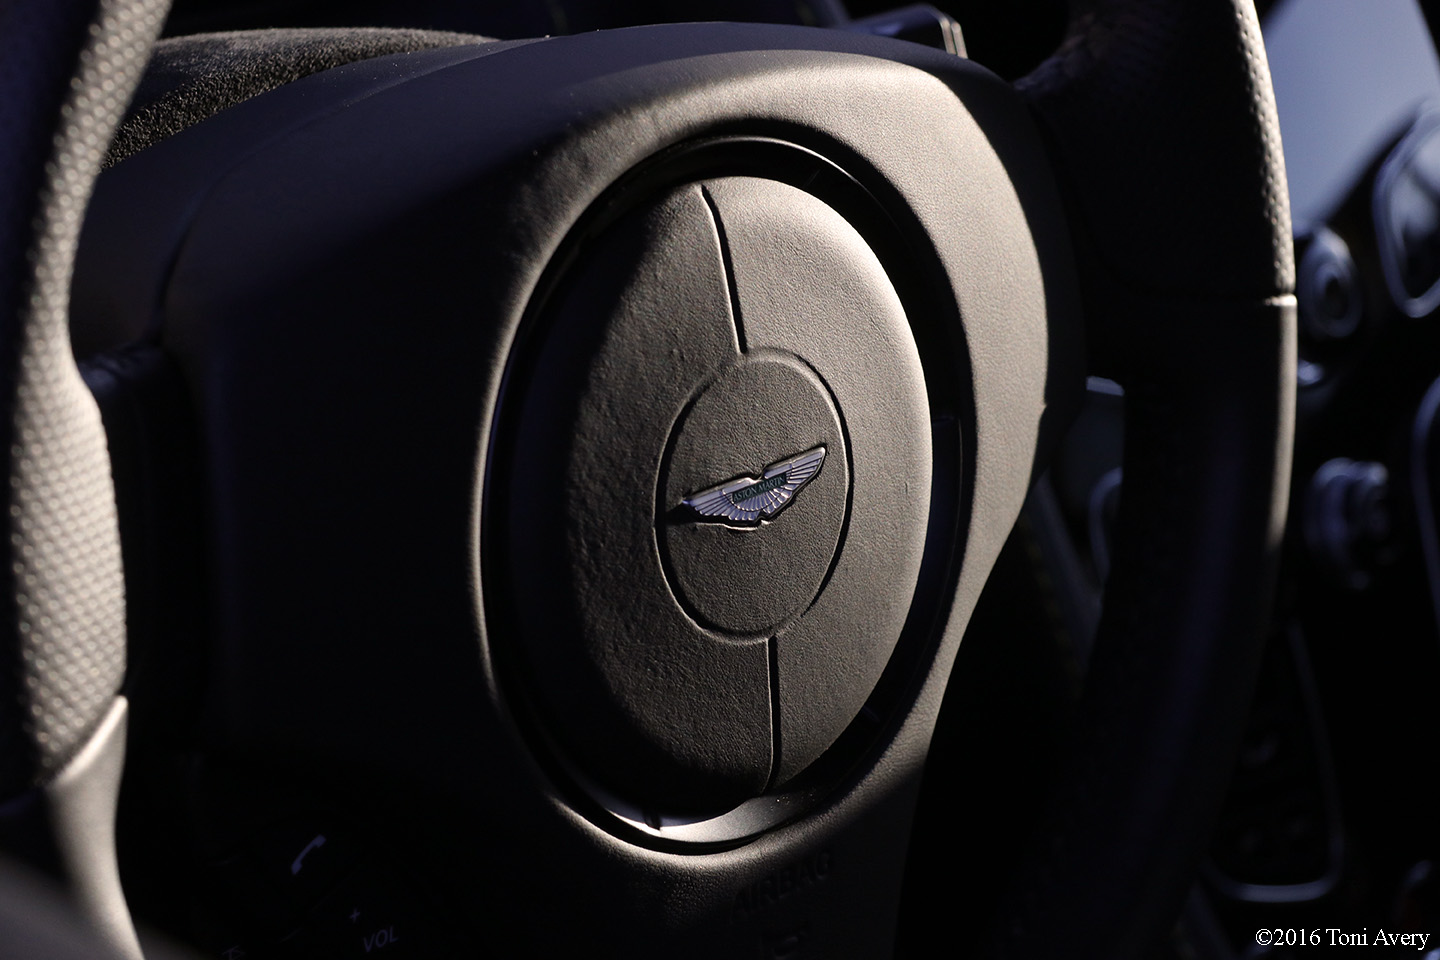 2016 Aston Martin Vantage GT steering wheel